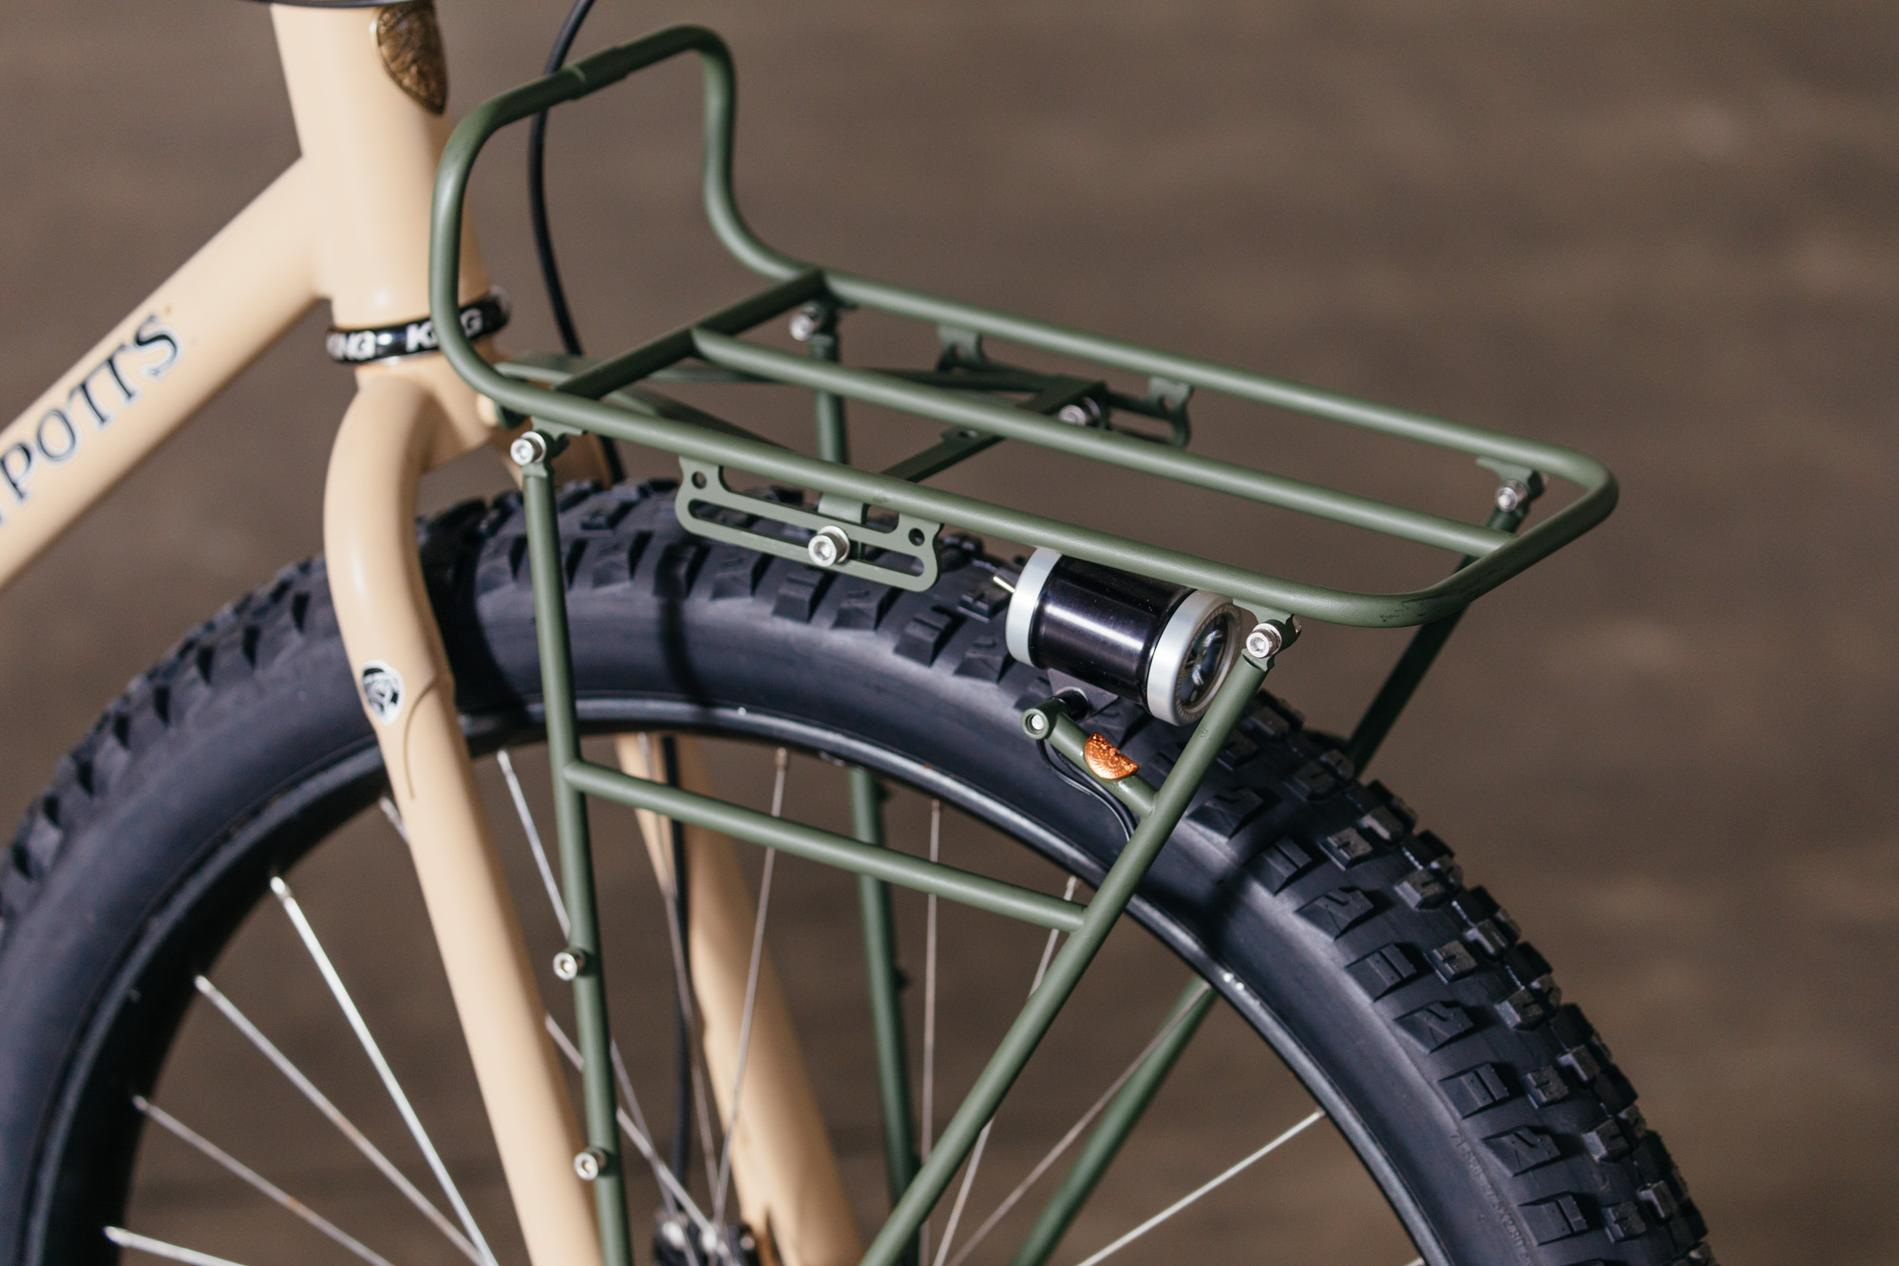 Monkey Wrench and Steve Potts Trail Tourer with Pass and Stow Racks